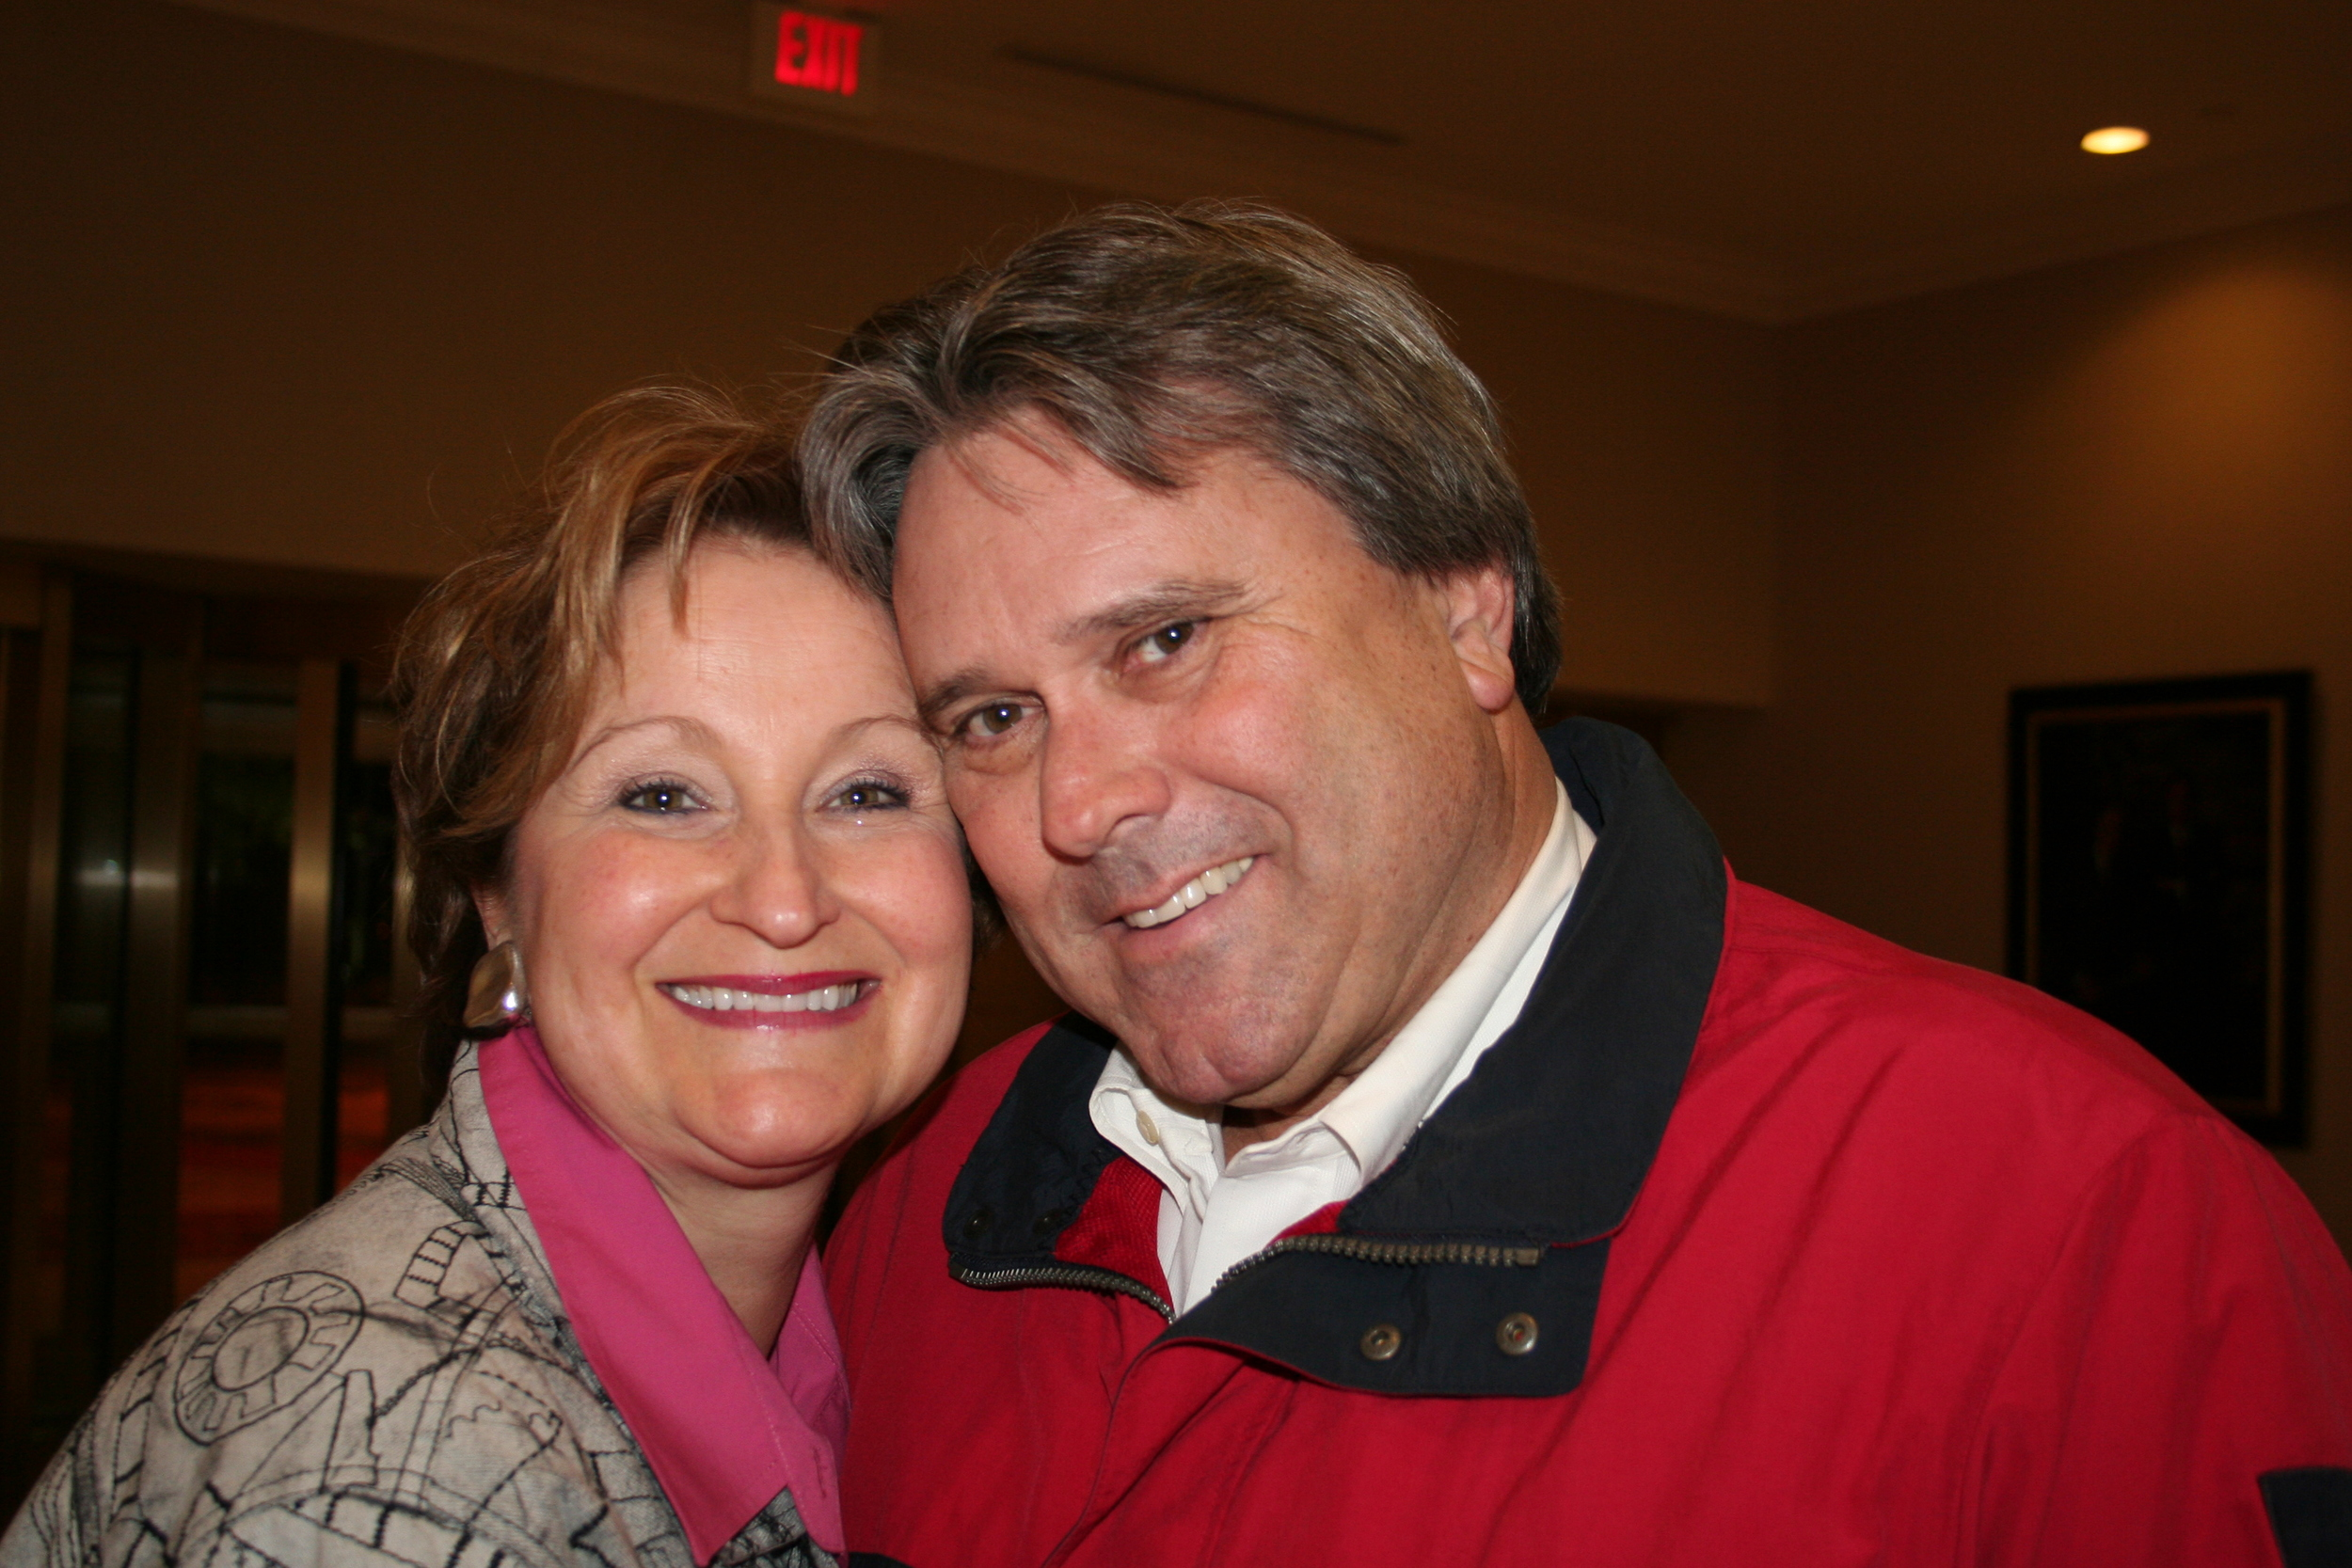 Gary and his lovely wife Nancy